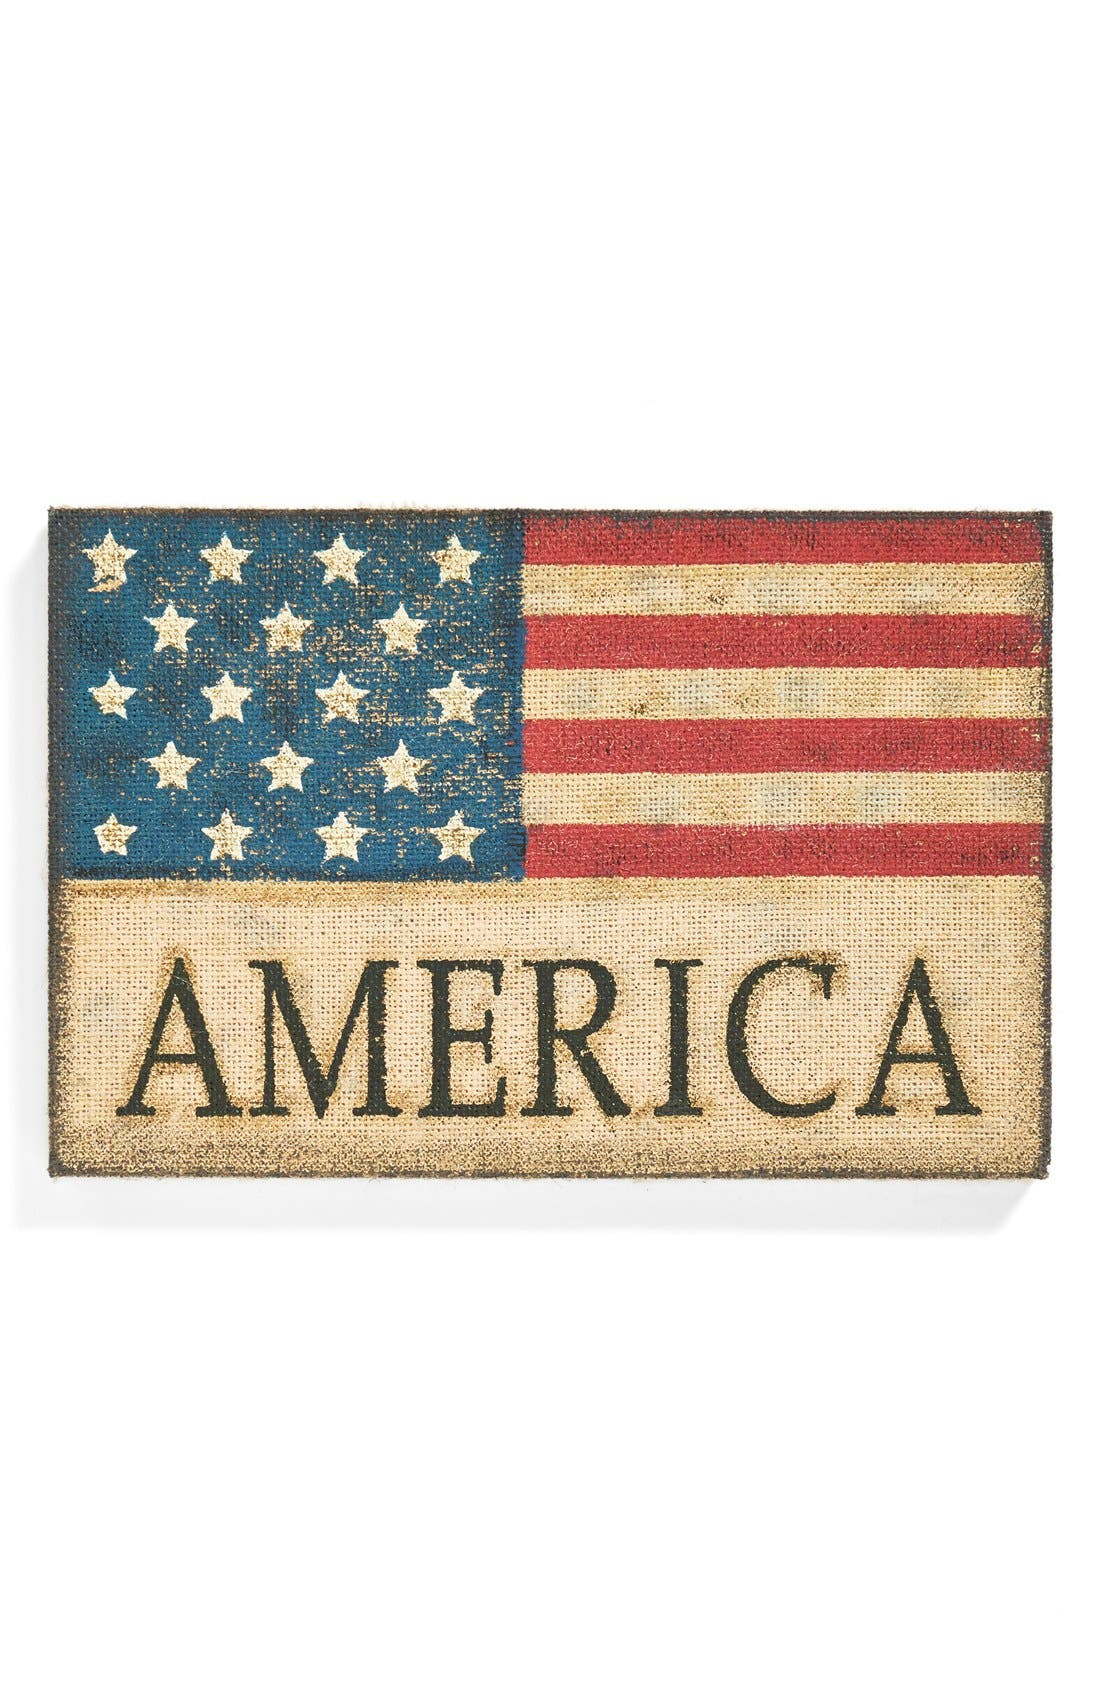 Alternate Image 1 Selected - Transpac 'Americana' Burlap Wall Sign